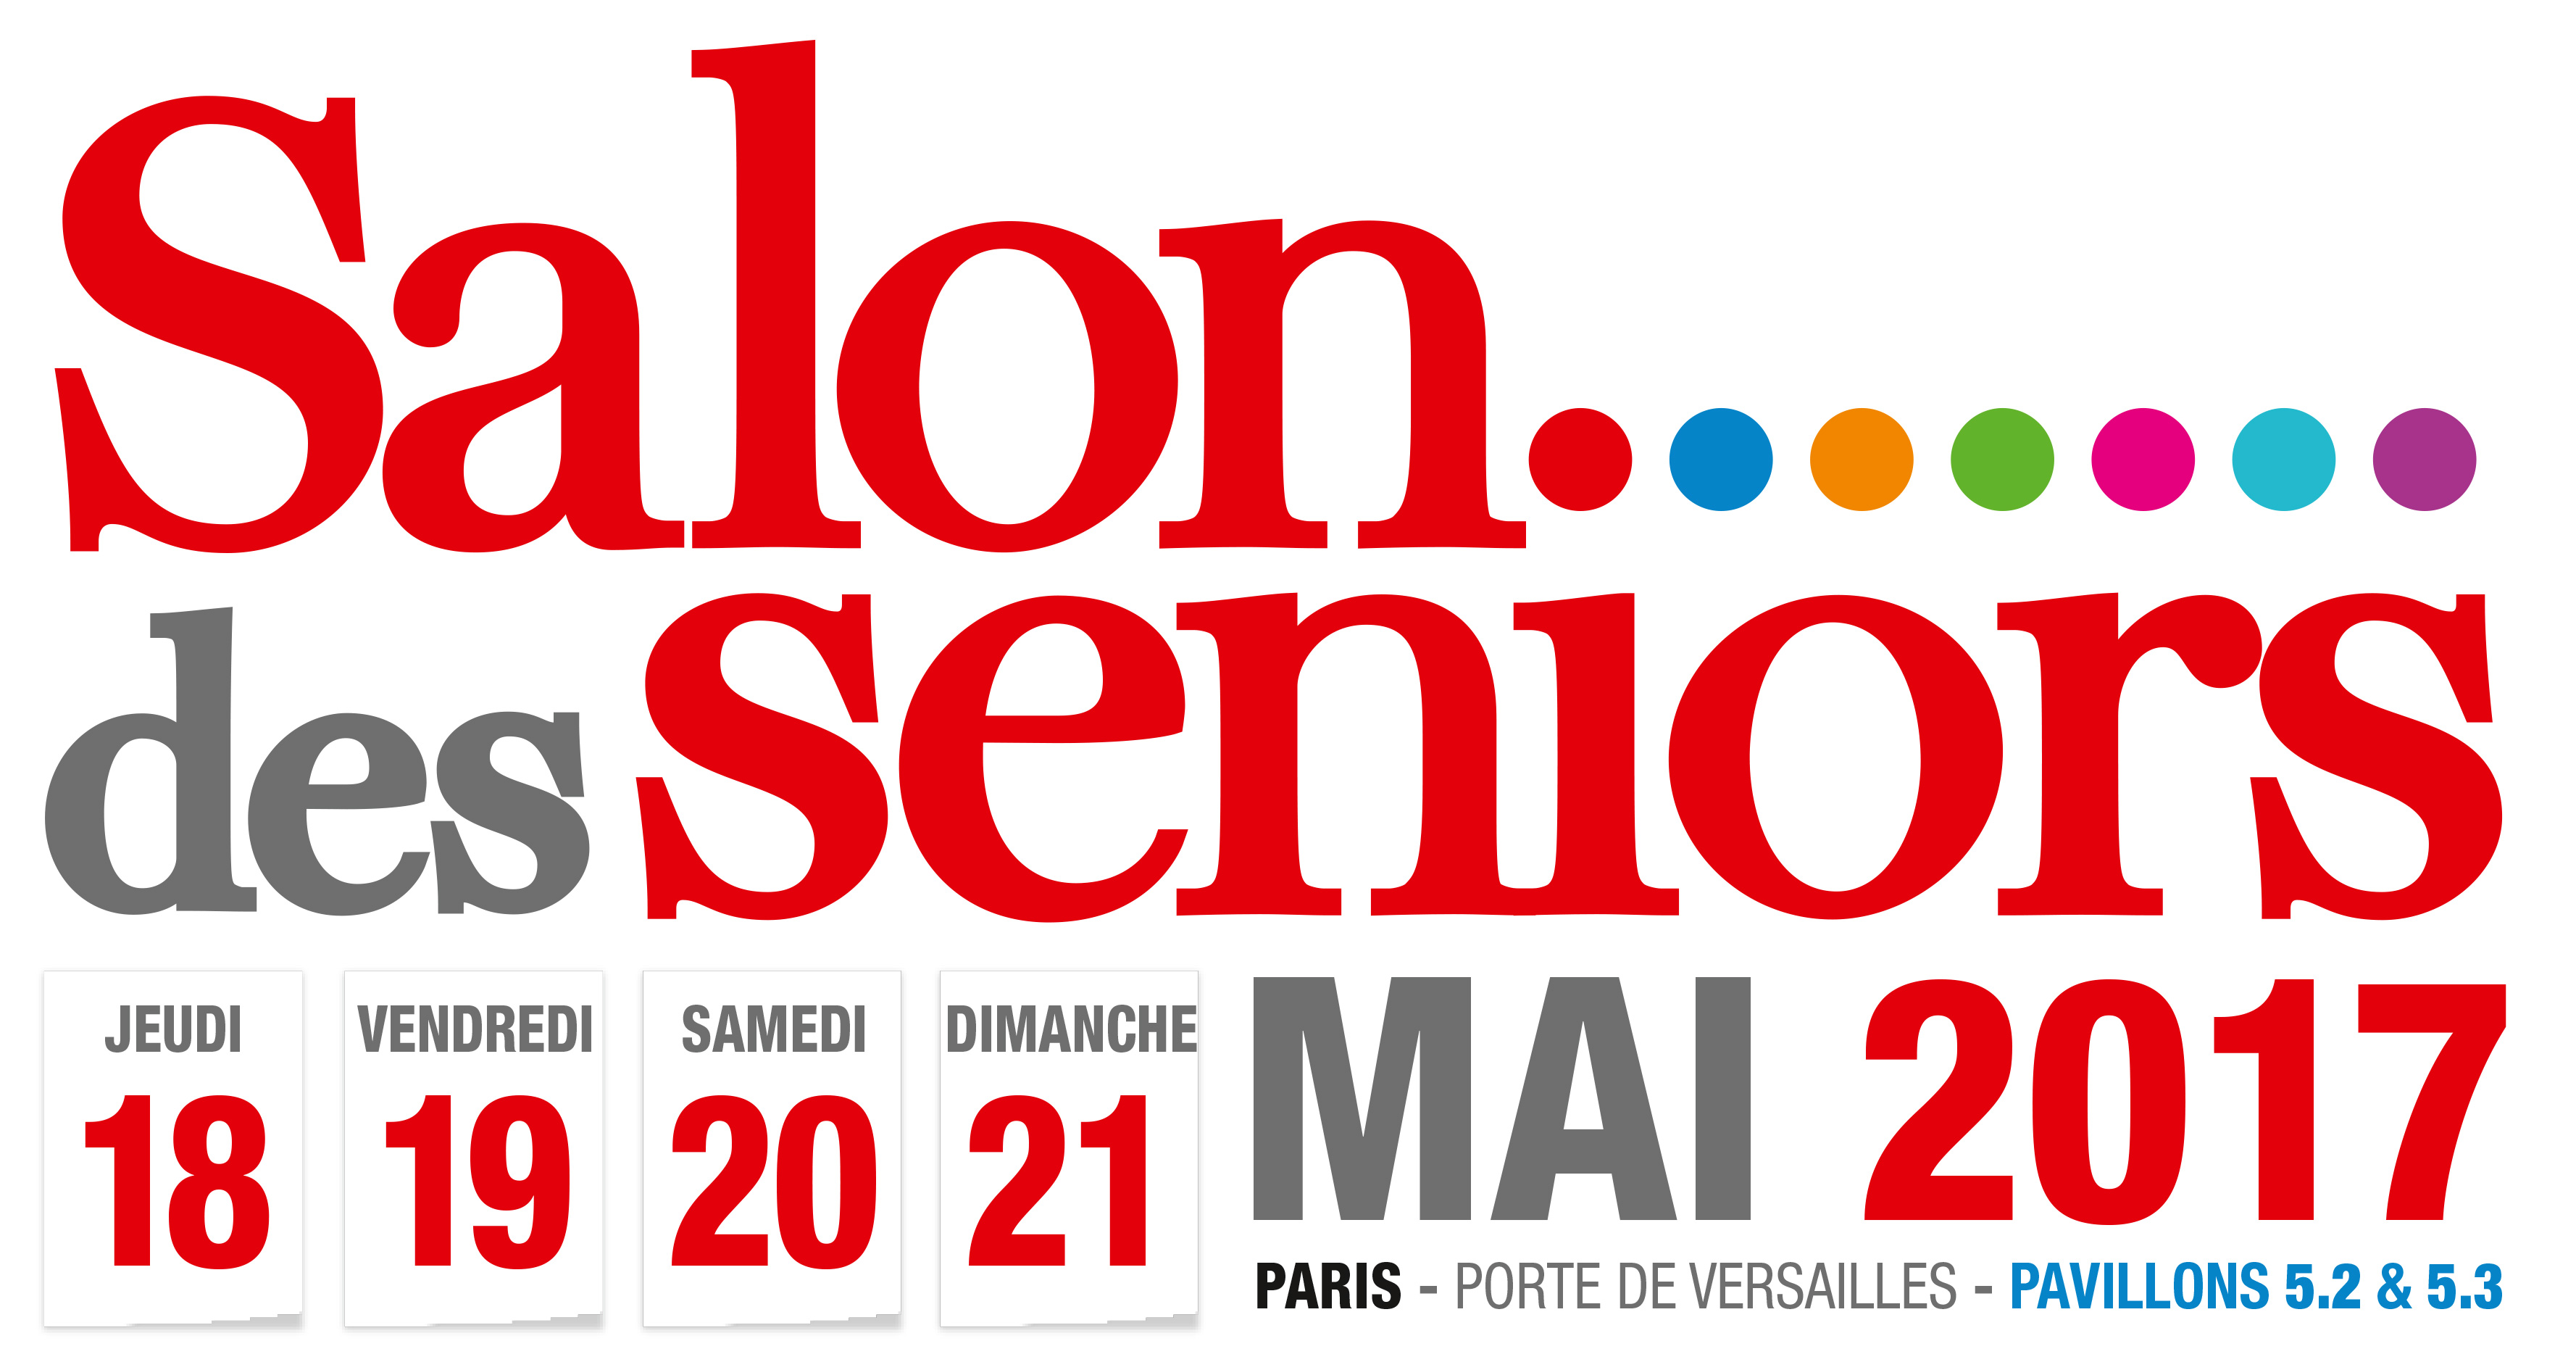 Nos auteurs au salon des seniors soci t des ecrivains for Salon seniors